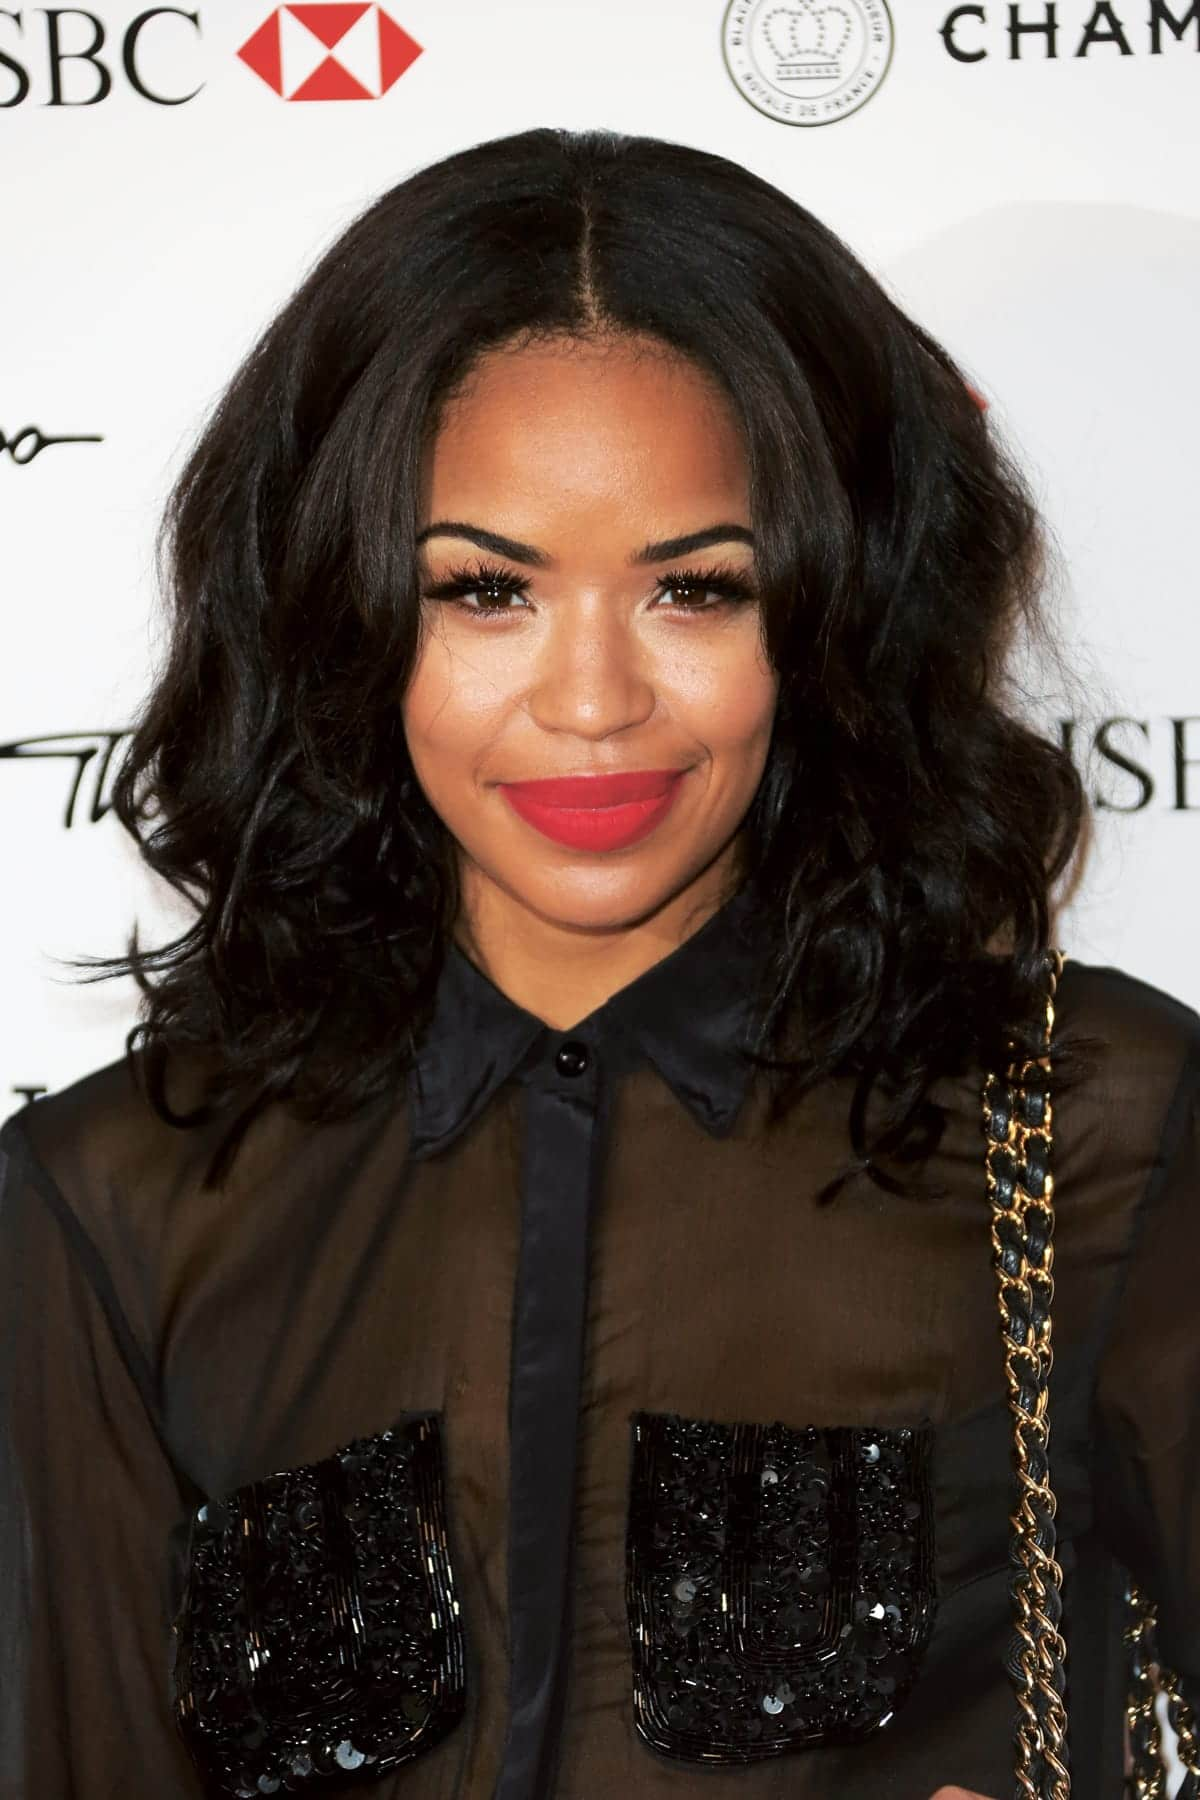 sarah-jane crawford